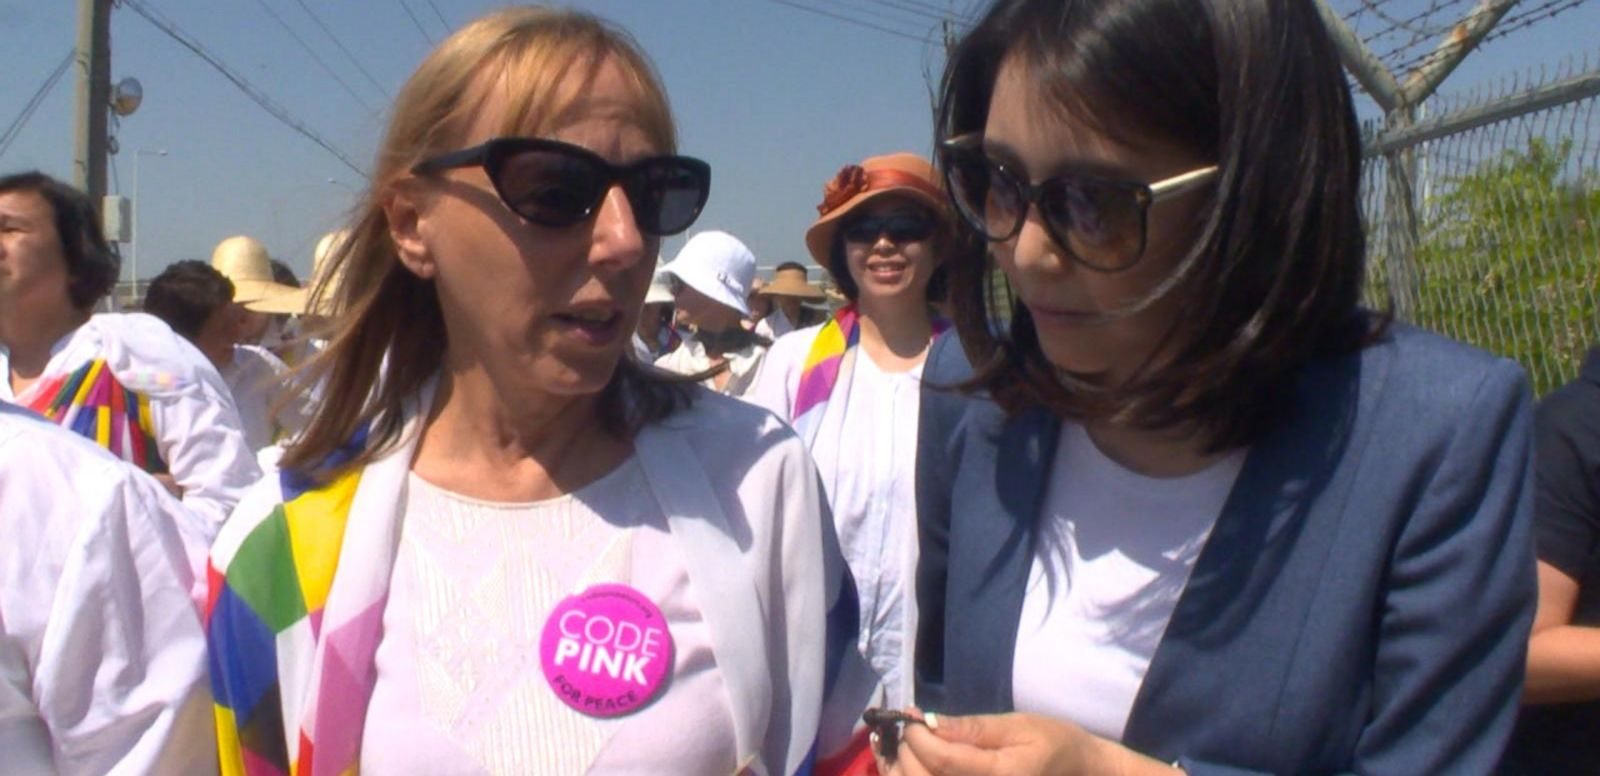 VIDEO: ABC News' Joohee Cho met with the marchers that included US activist Medea Benjamin.